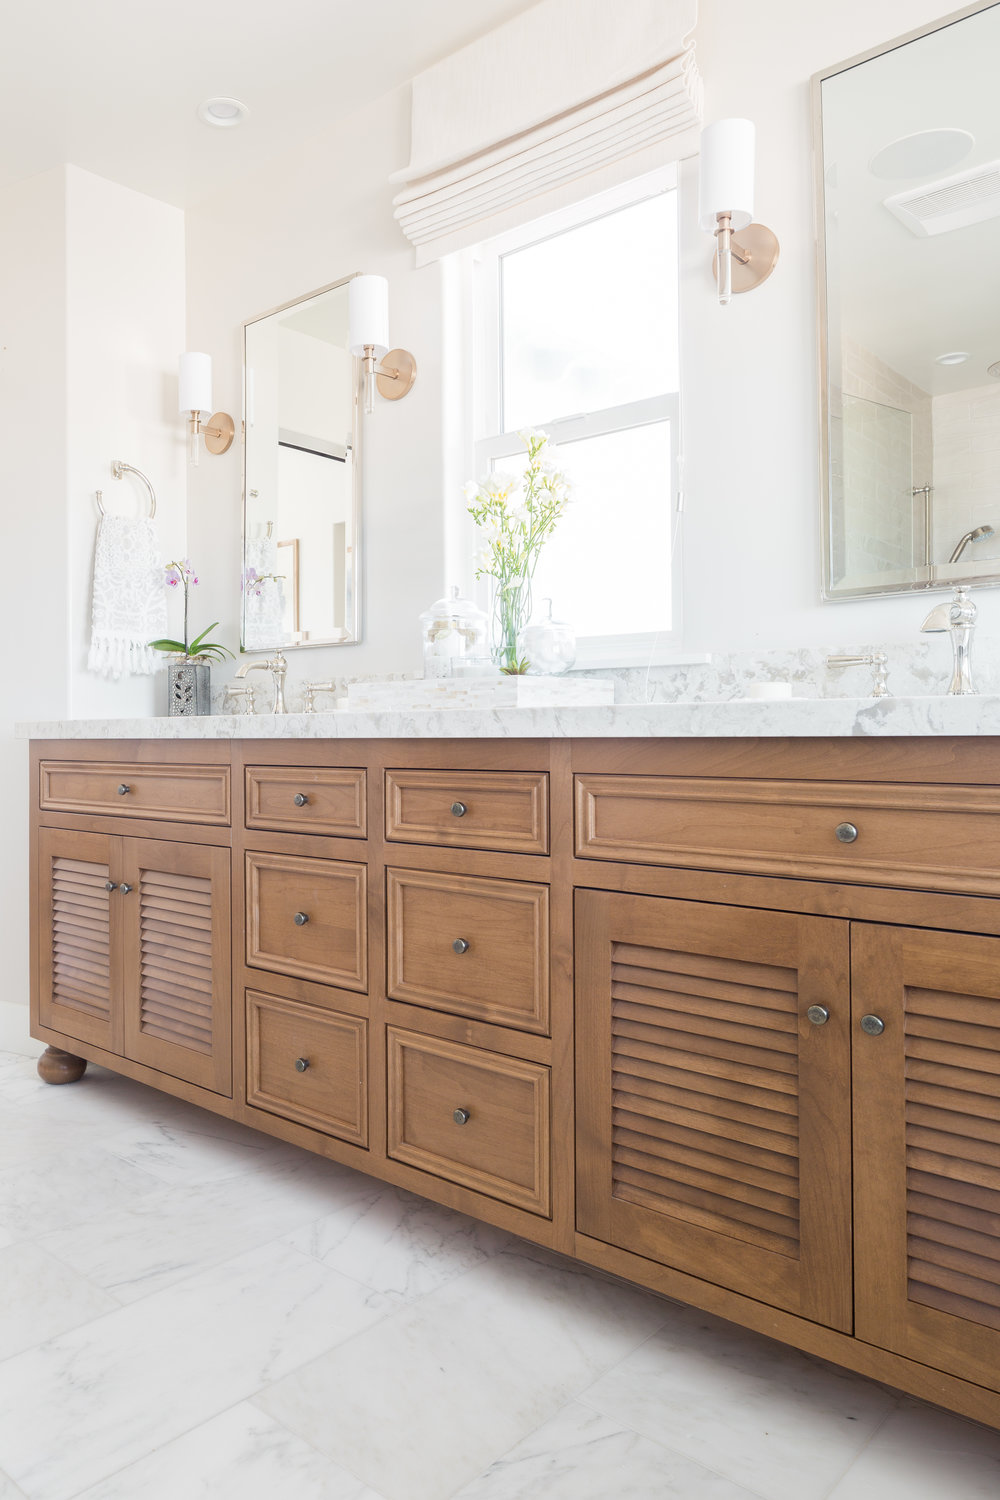 Bathroom Cabinets Ventura County blog — native oak